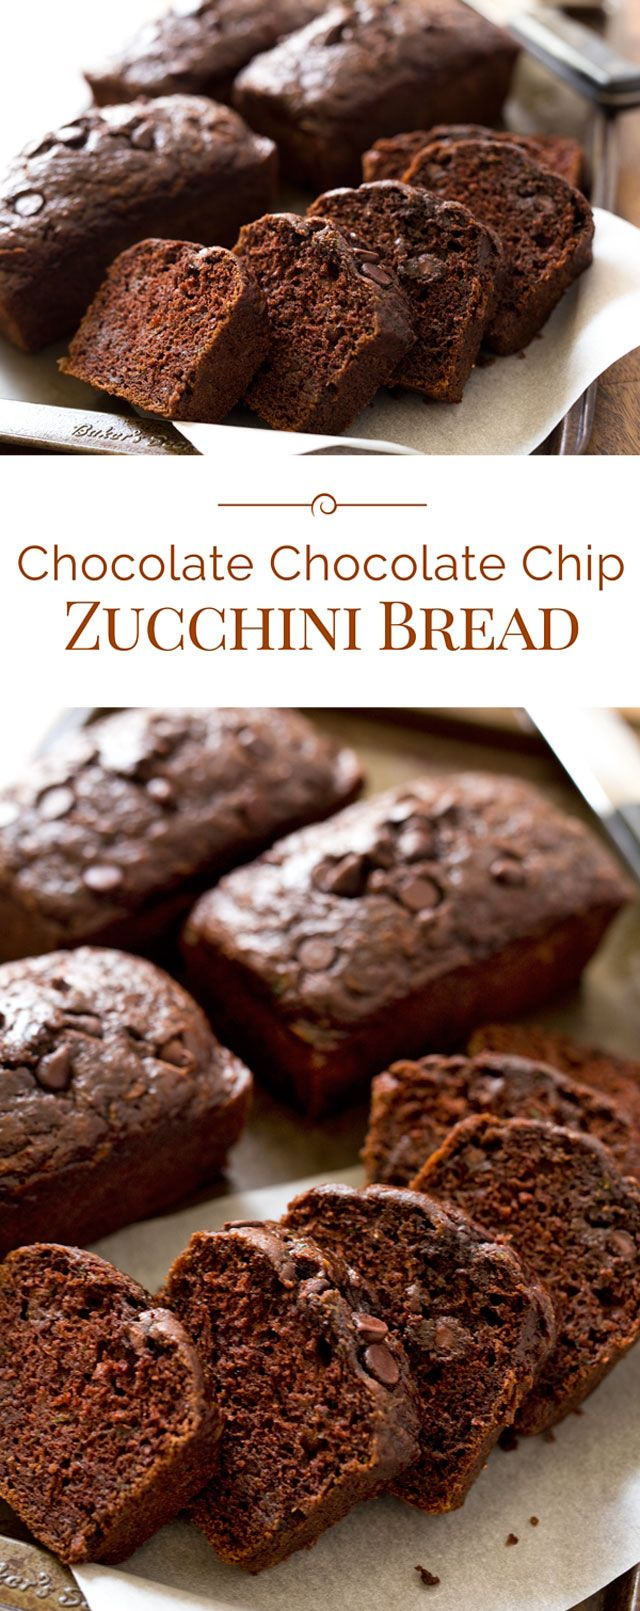 This Chocolate Chocolate Chip Zucchini Bread is a moist, delicious, better-for-you double chocolate quick bread made with zucchini, non-fat Greek yogurt and canola oil.